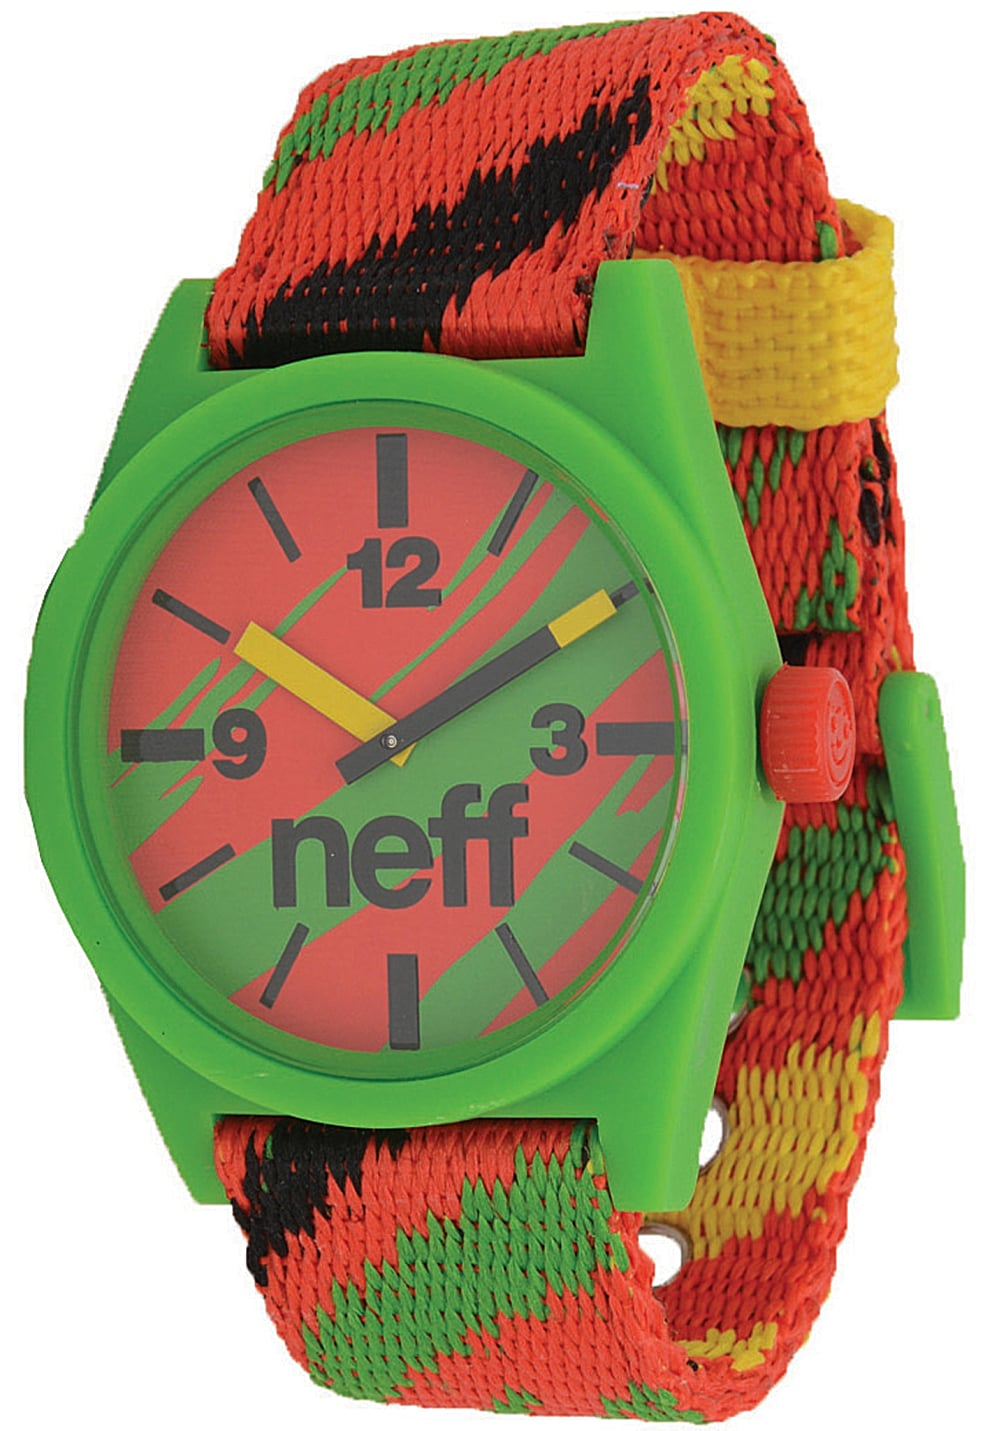 Neff Daily Woven Watch Uhr - Mehrfarbig - OneSize